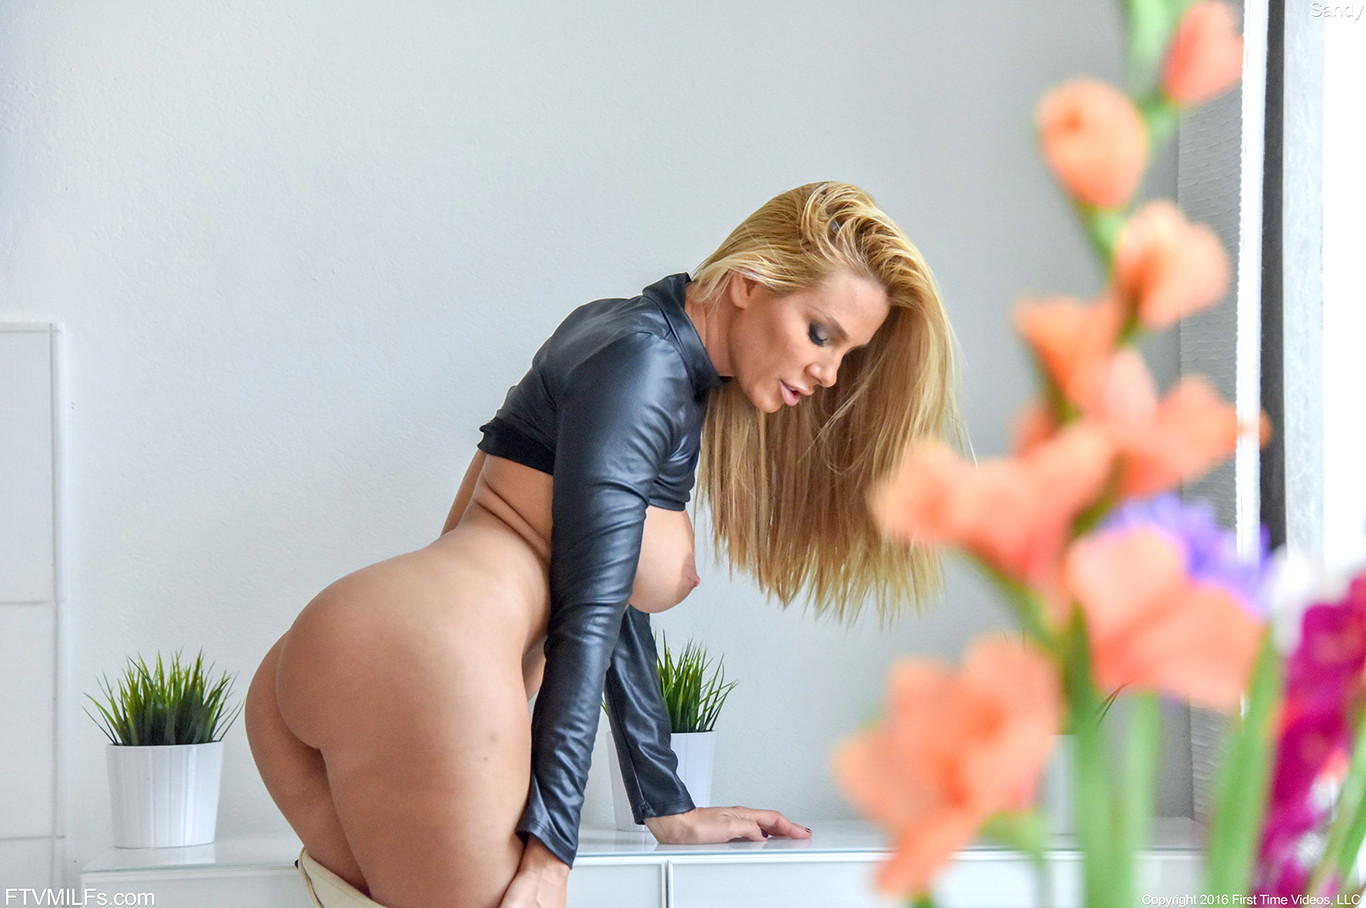 xvideos today